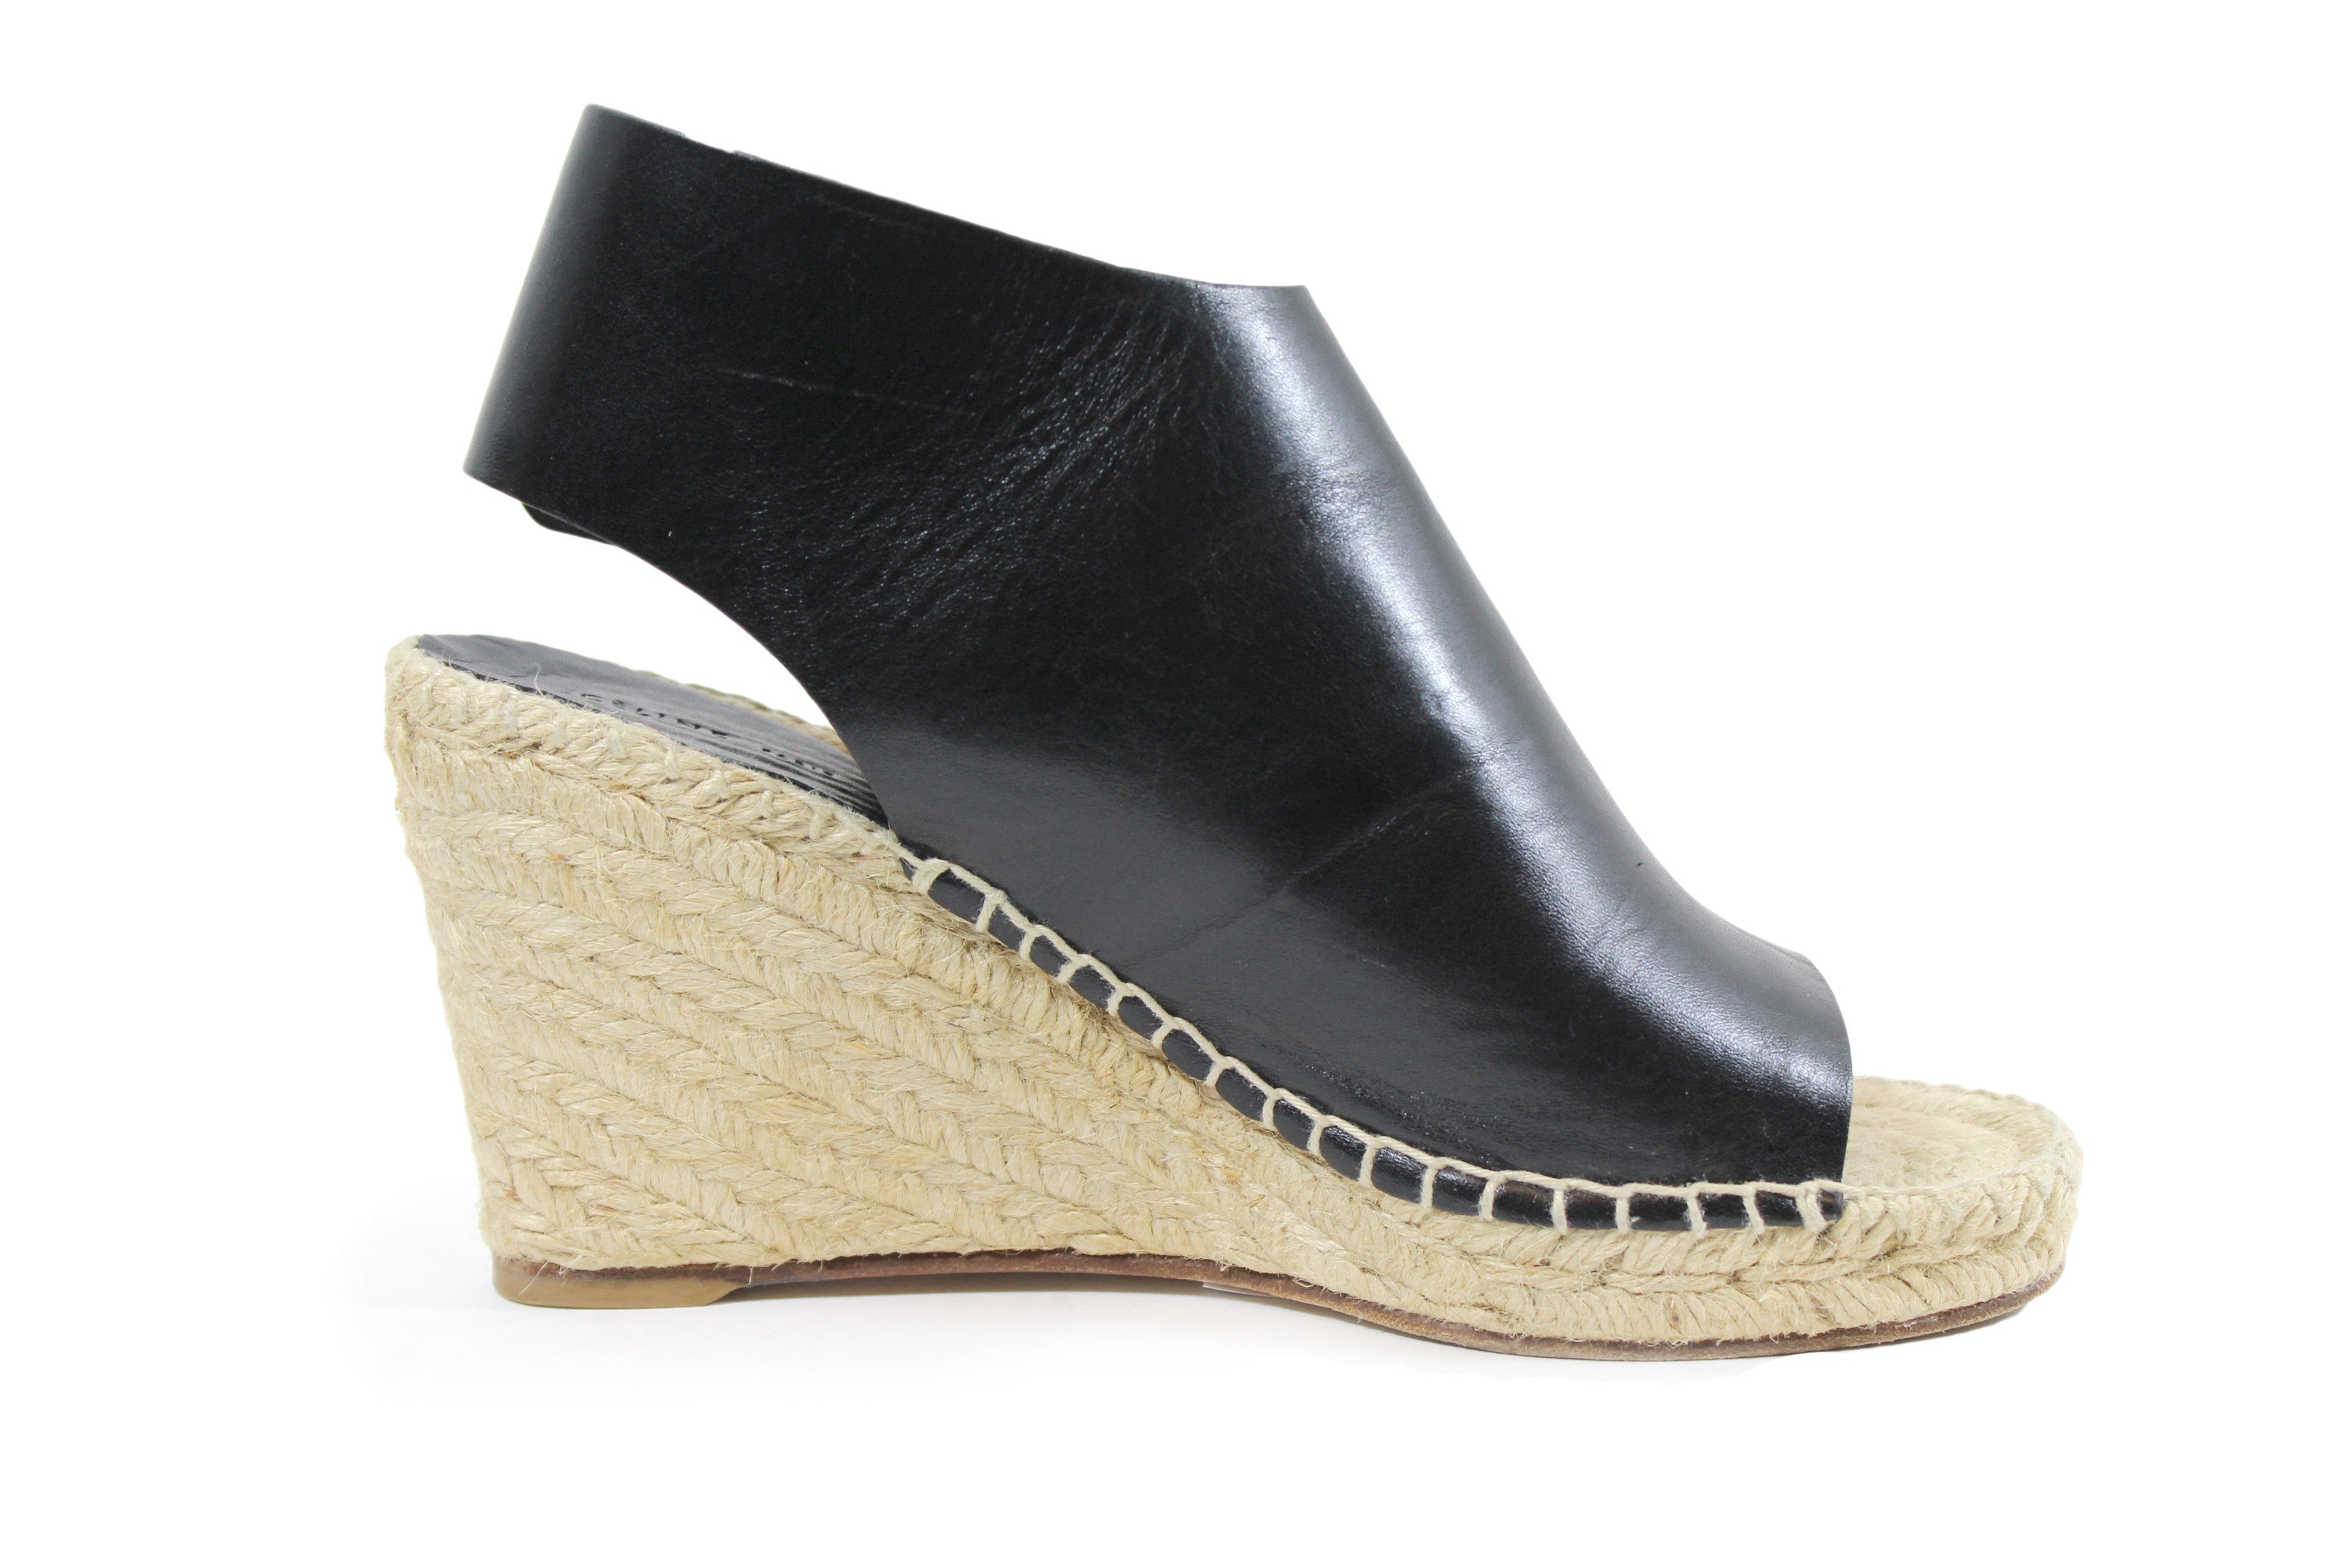 Celine Black Leather Espadrille Wedges (Size 35)